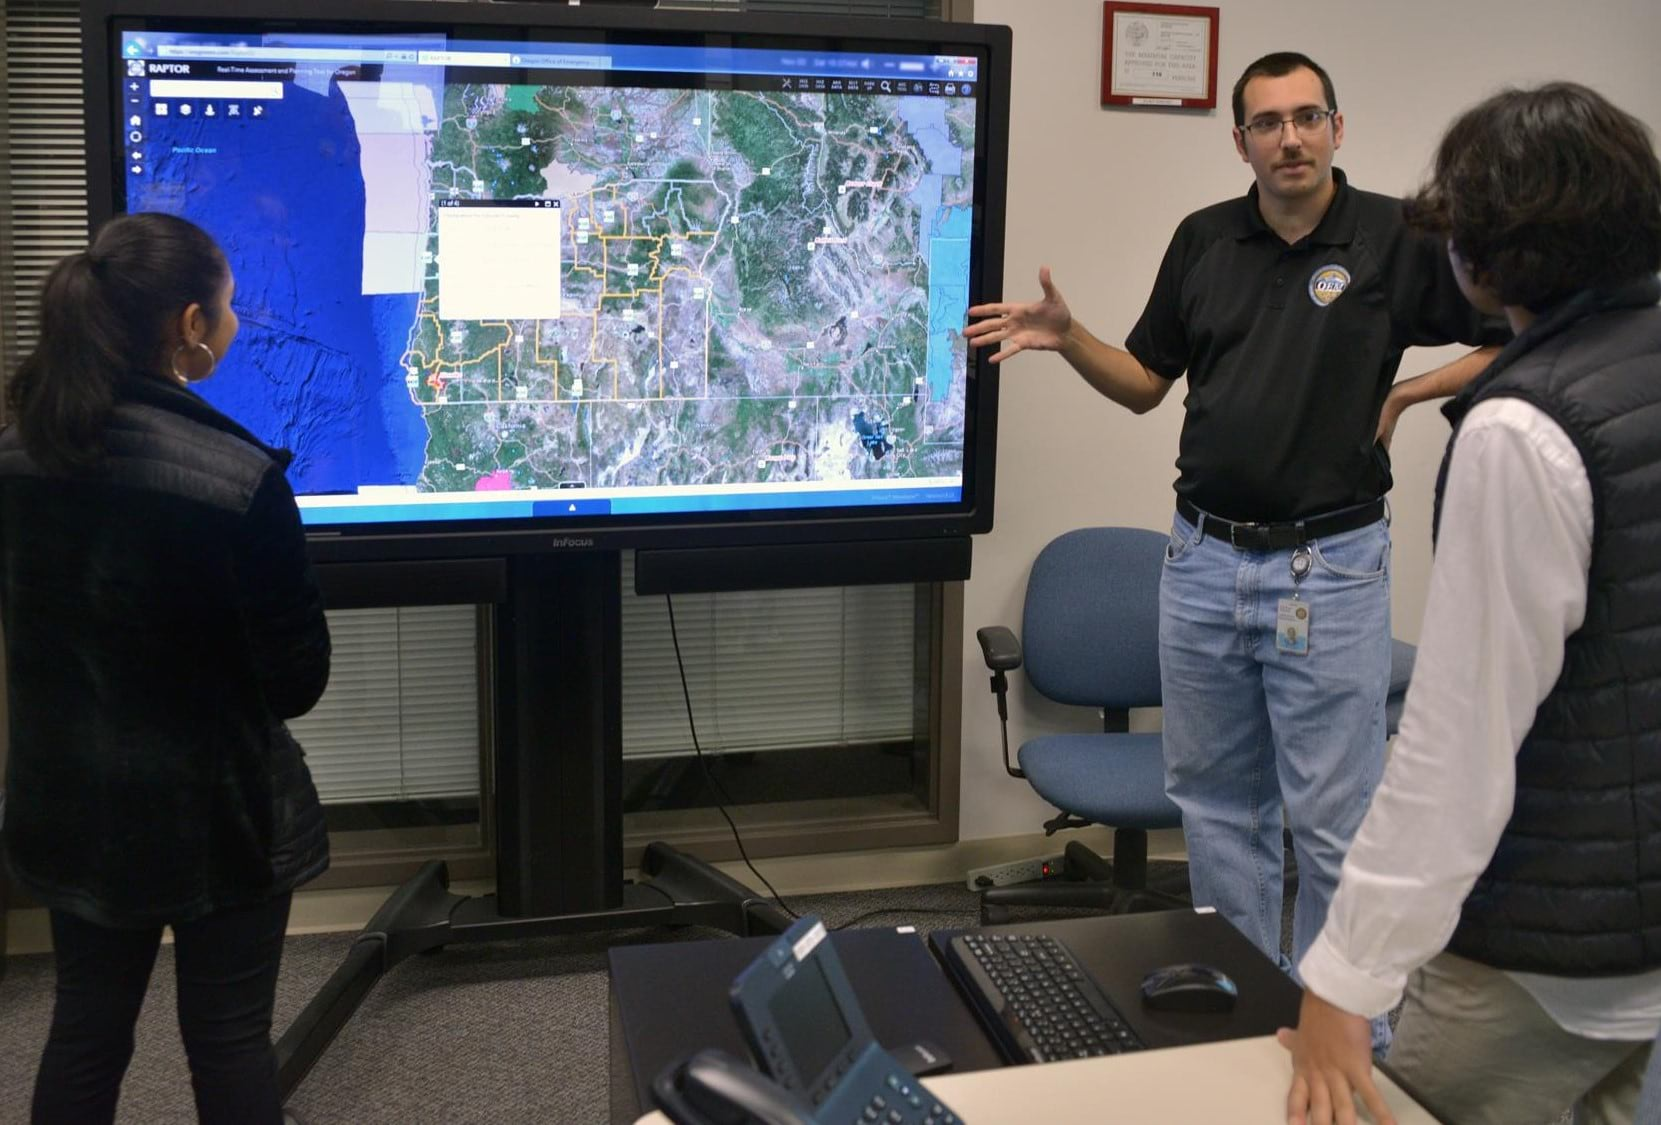 Daniel Stoelb, GIS program manager for Oregon's Office of Emergency Management, discusses the RAPTOR application with two students